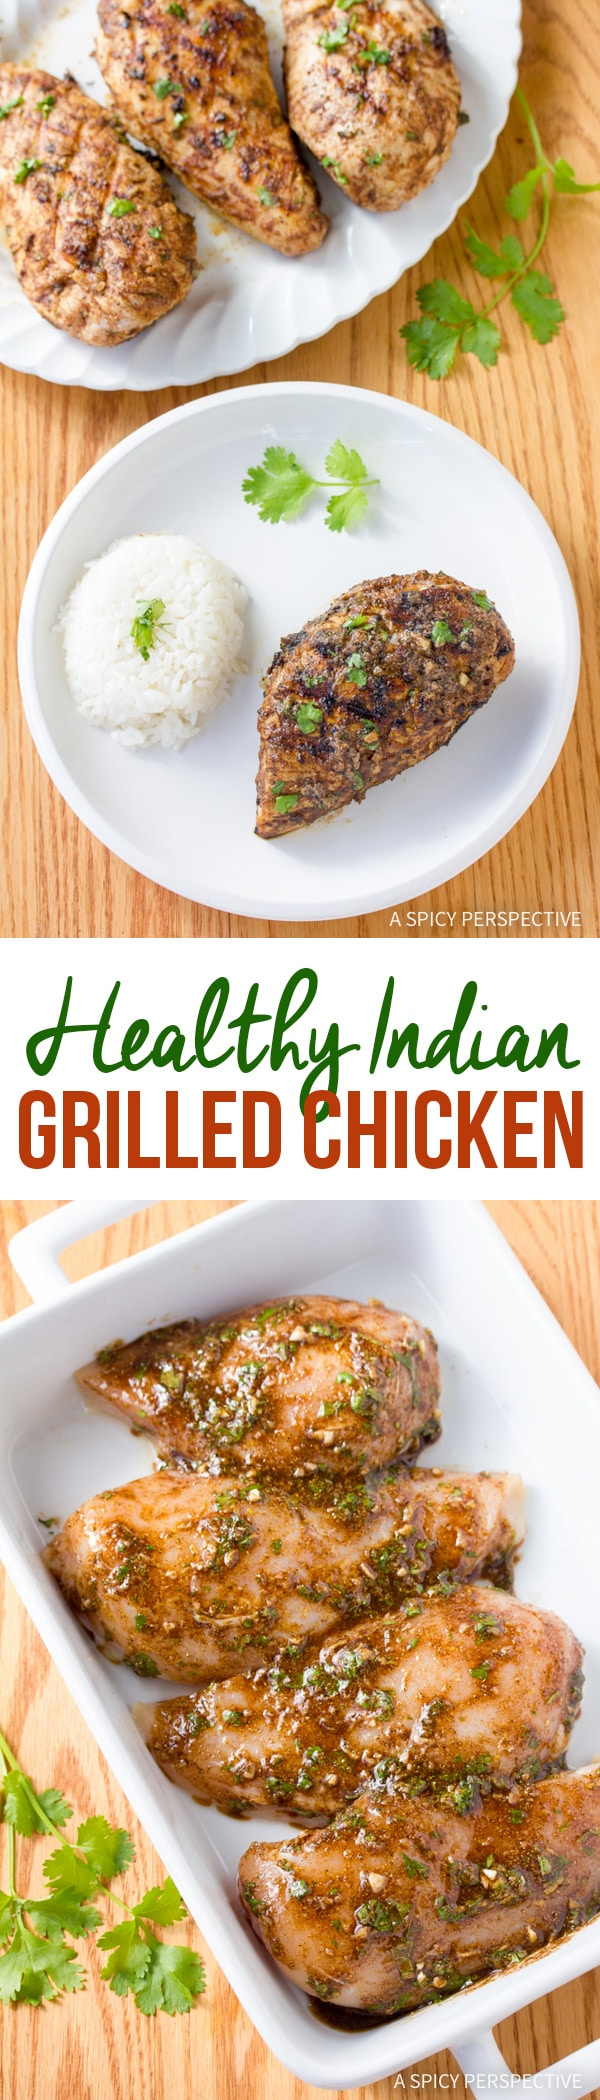 Zesty Indian Grilled Chicken #healthy #paleo #glutenfree